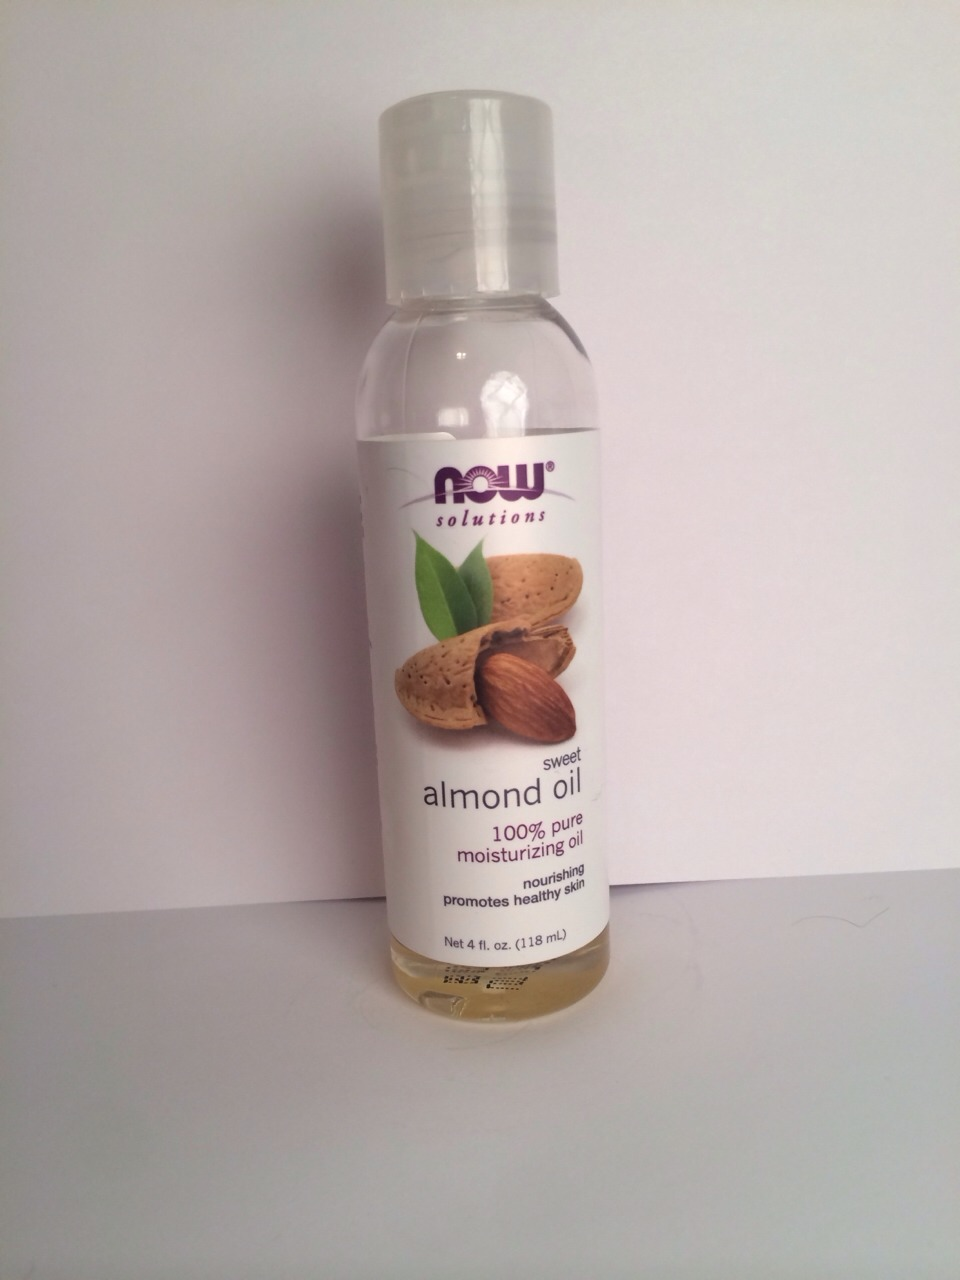 Part 3: 100% All Natural Sweet Almond Oil Benefits: Almond oil is great for the hair because of the fact that it's rich in Vitamin A, B, and E. Not only is it good for hair but it is also good for reducing dark circles and making skin look softer and healthier faster.